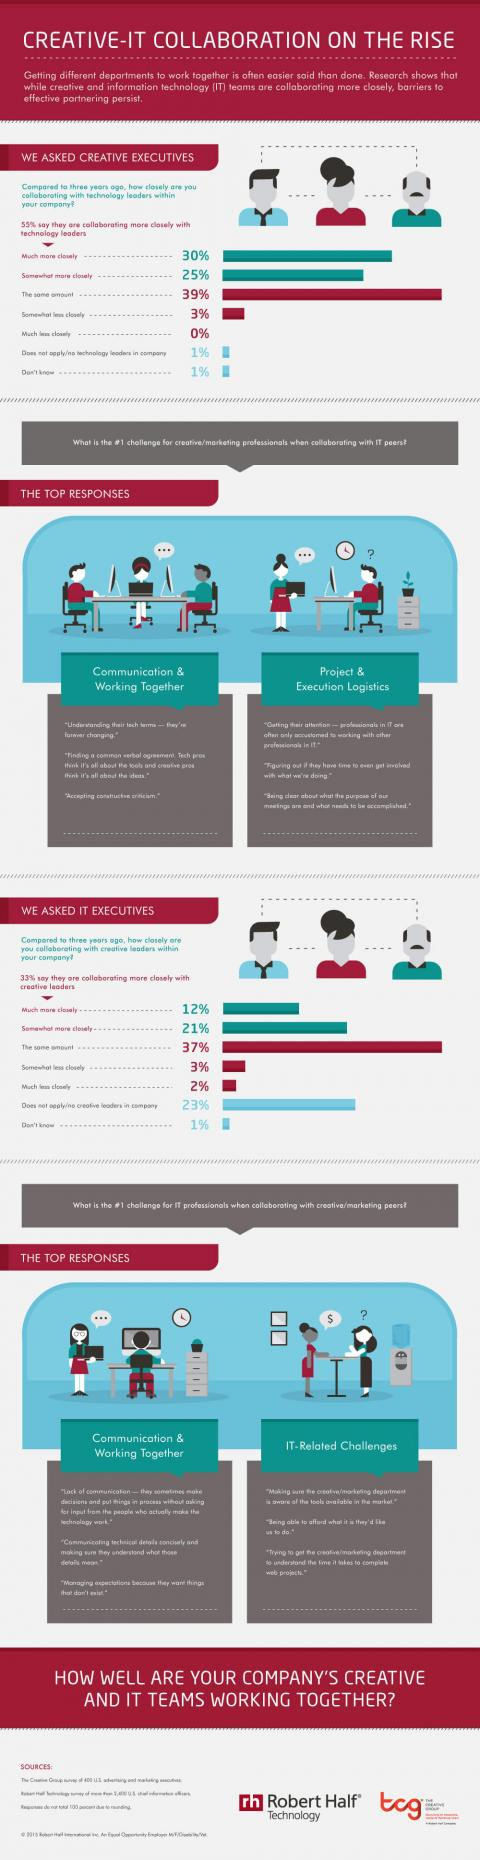 An infographic featuring the results of a Robert Half survey on collaboration between IT and creative teams